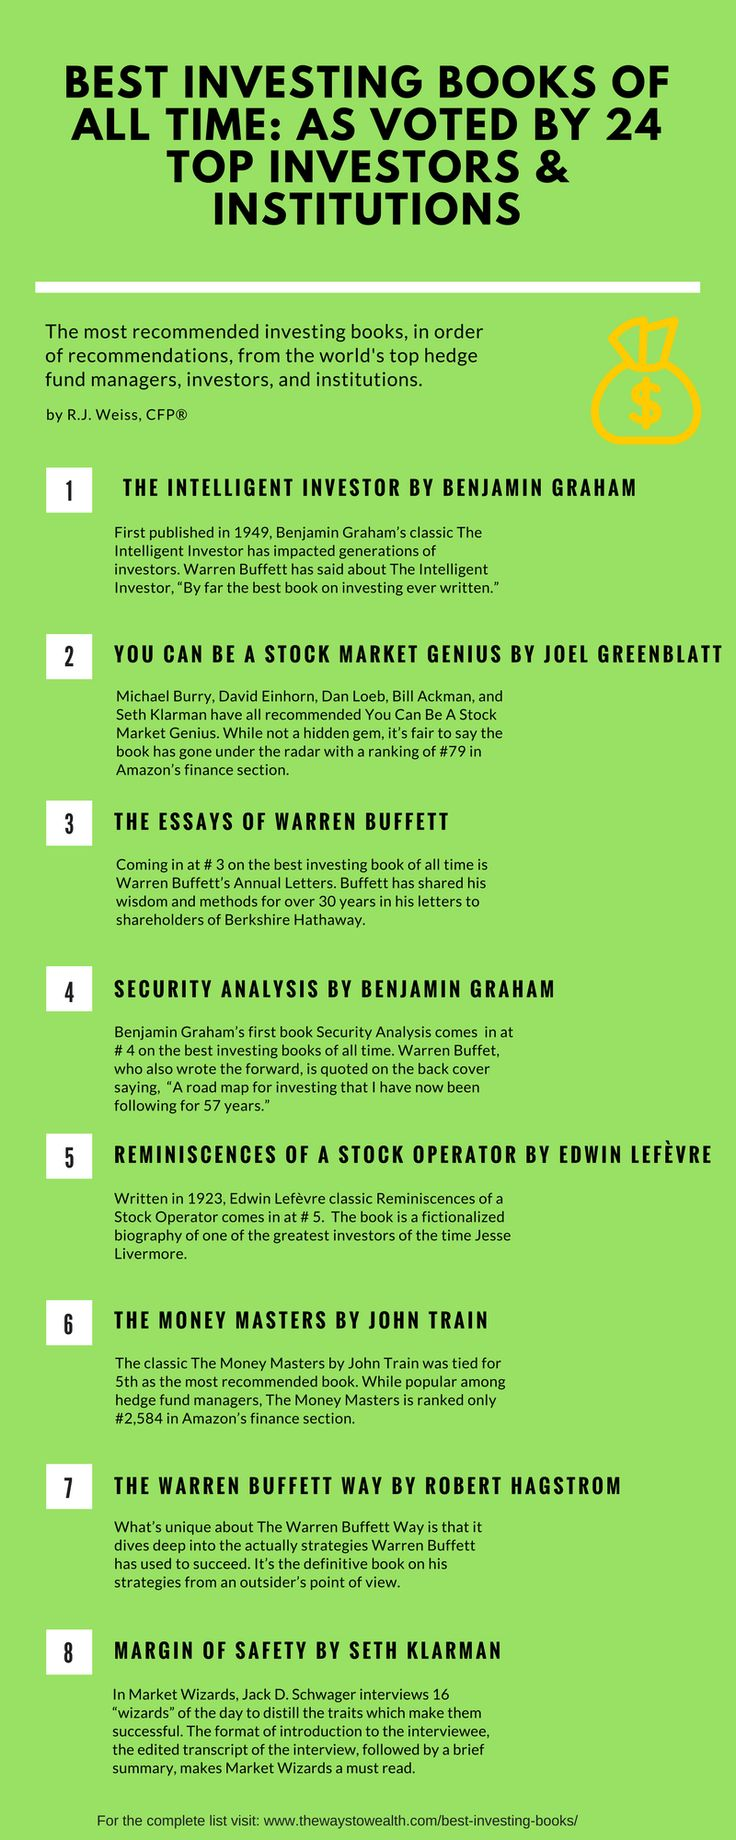 The most recommended books on investing according to the greatest investors of all time, the highest rated University classes, and the world's largest investment banks.